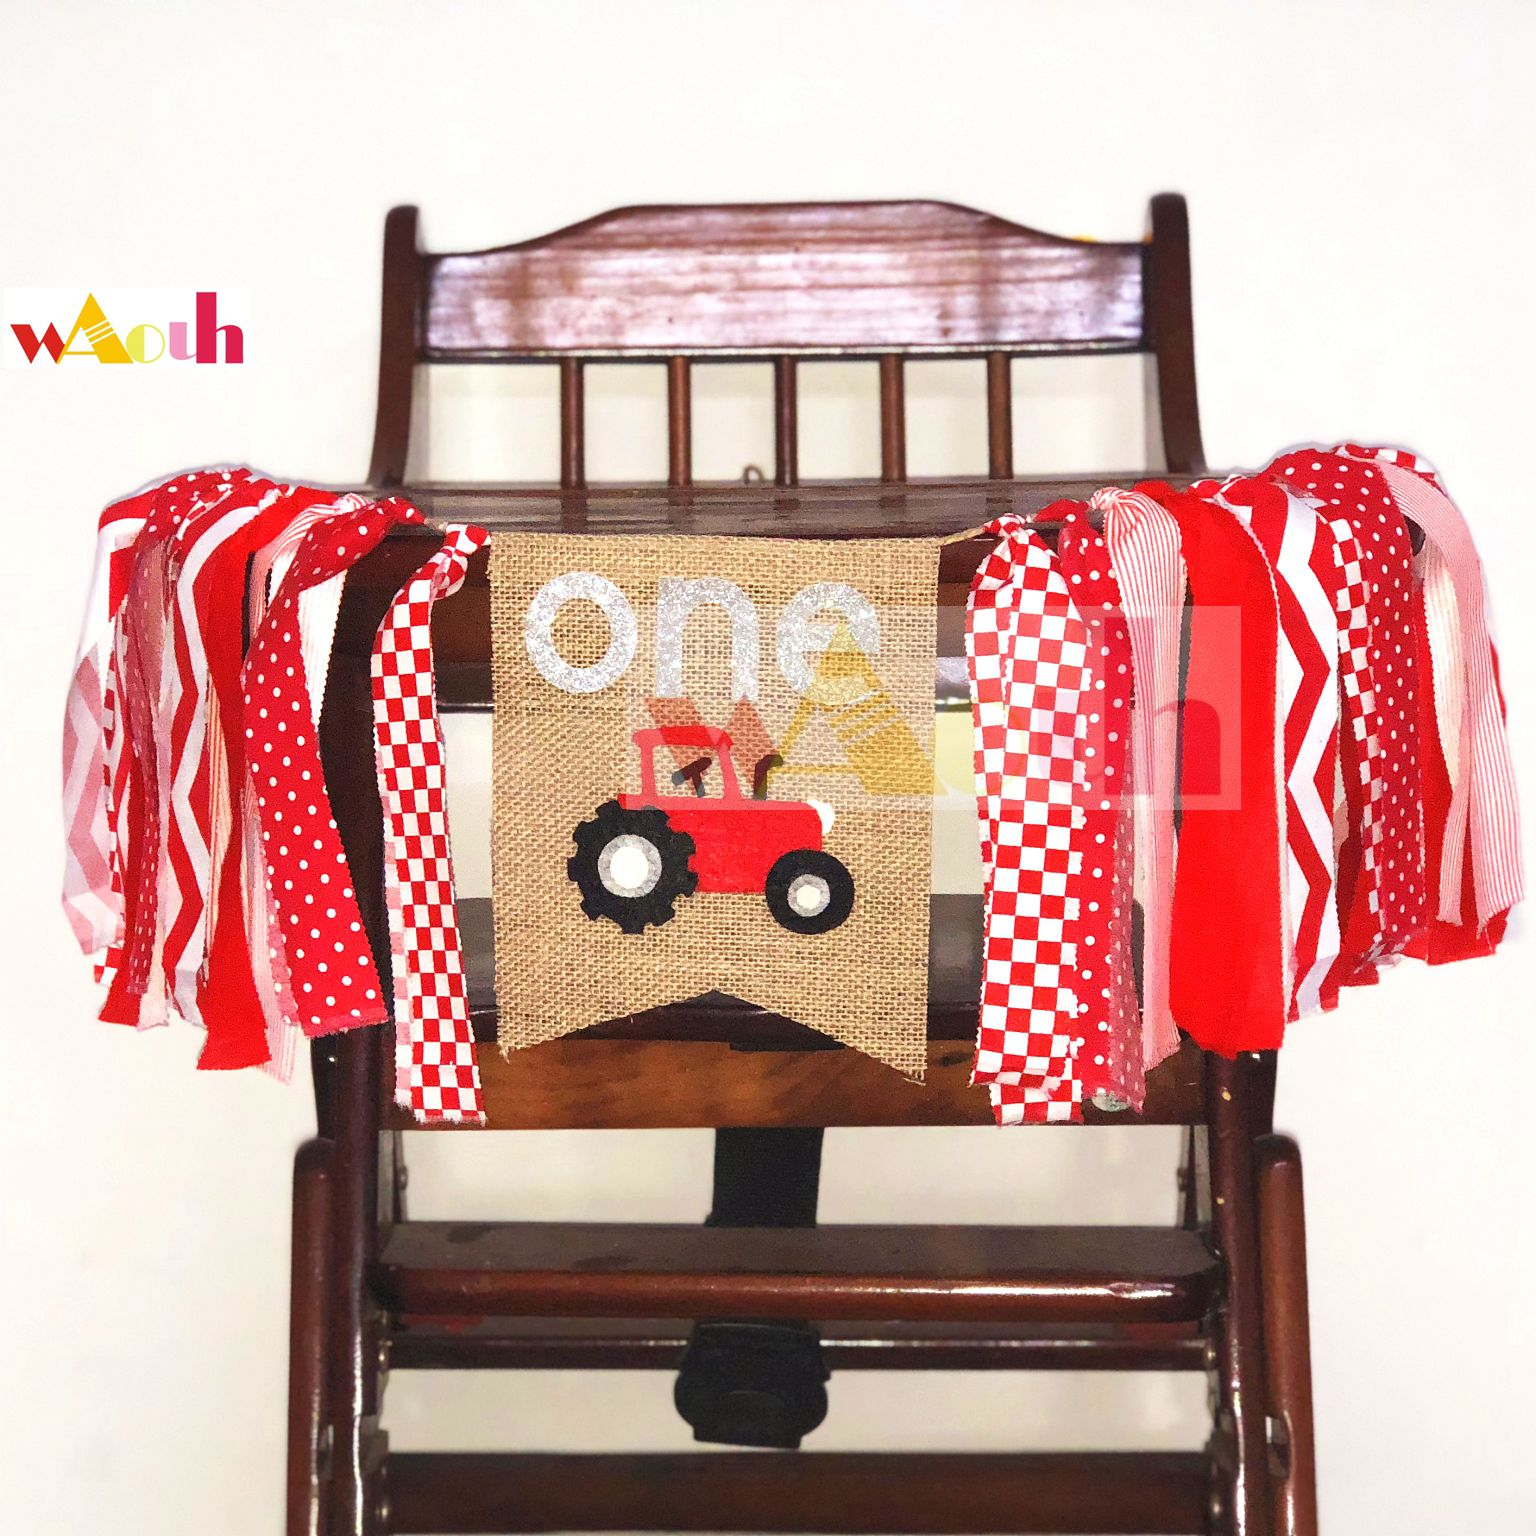 Small truck Highchair Birthday Banner Bumble Bee Party Photo Prop Bunting Backdrop Garden Tea Cake Smash baby room decoration